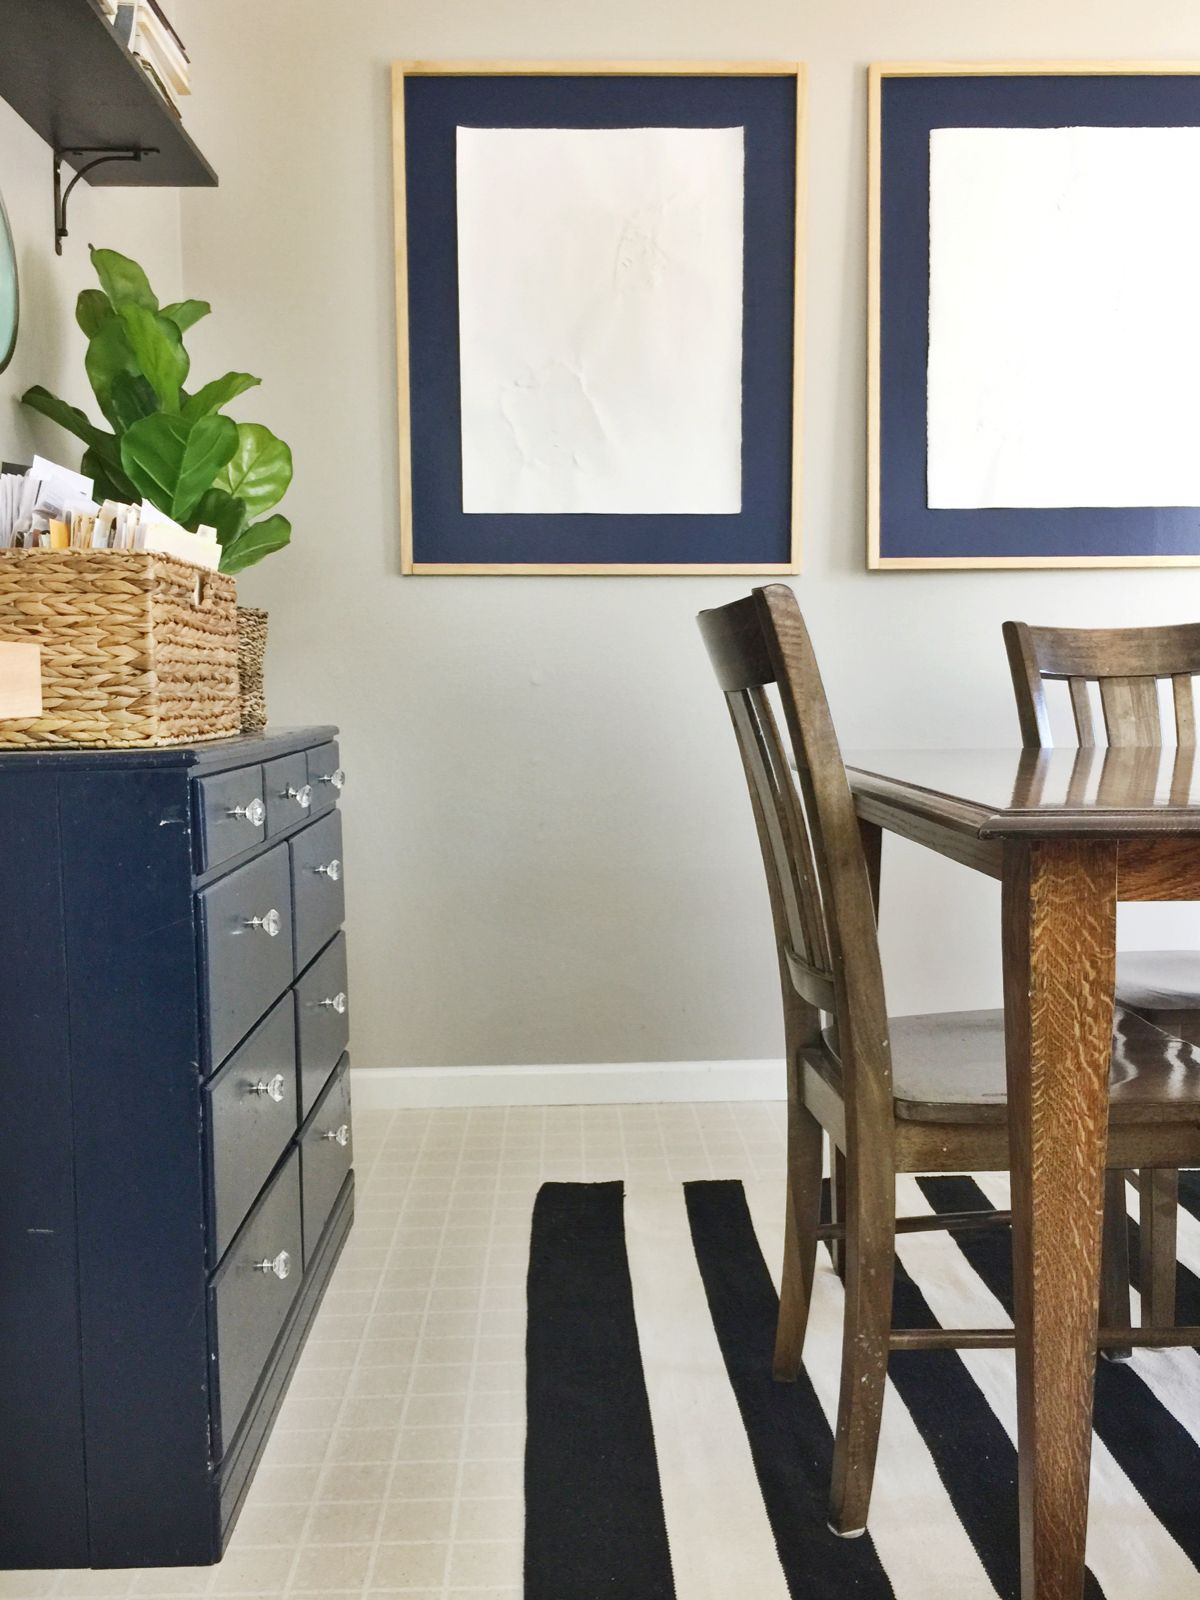 12 Affordable Ideas for Large Wall Decor | Living room ...